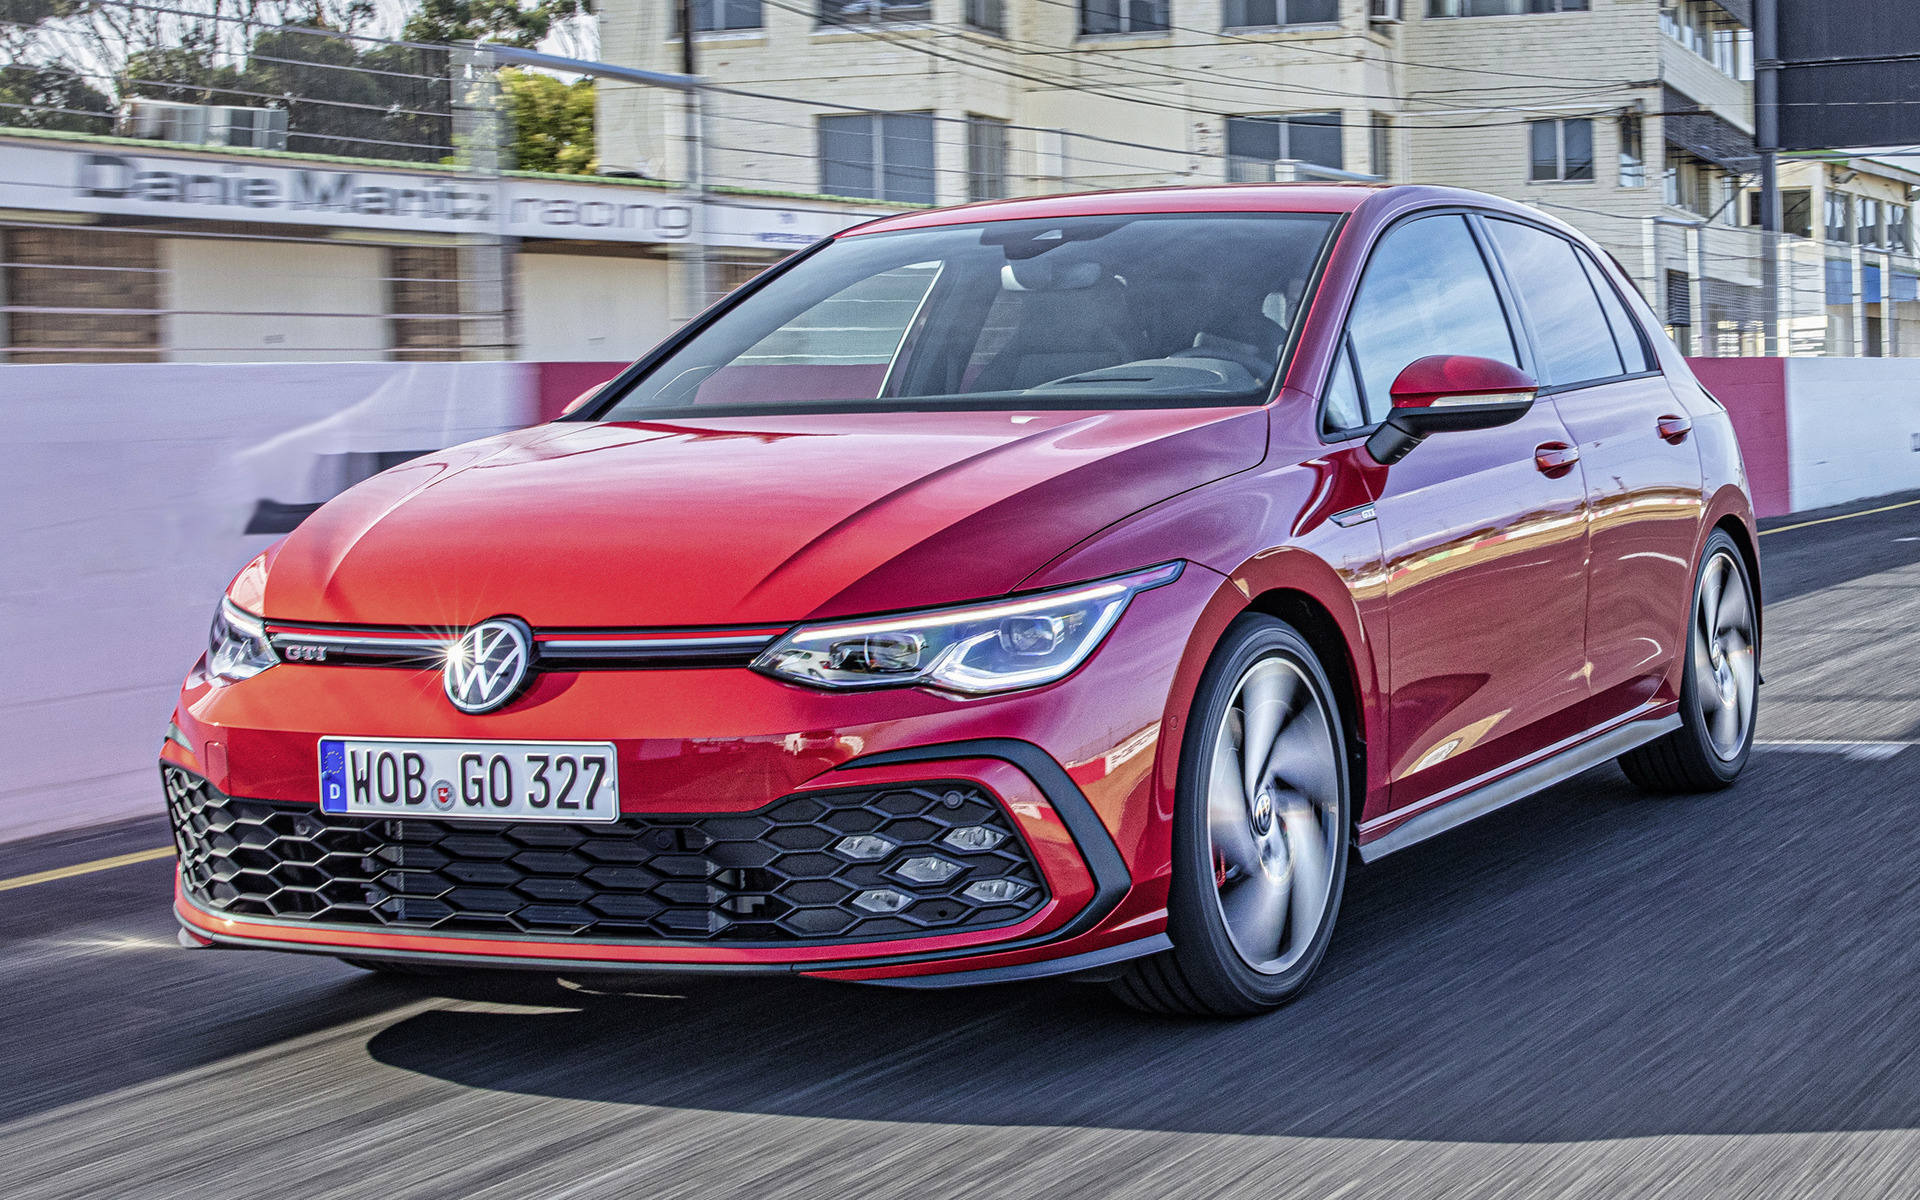 2020 Volkswagen Golf Gti Wallpapers And Hd Images Car Pixel